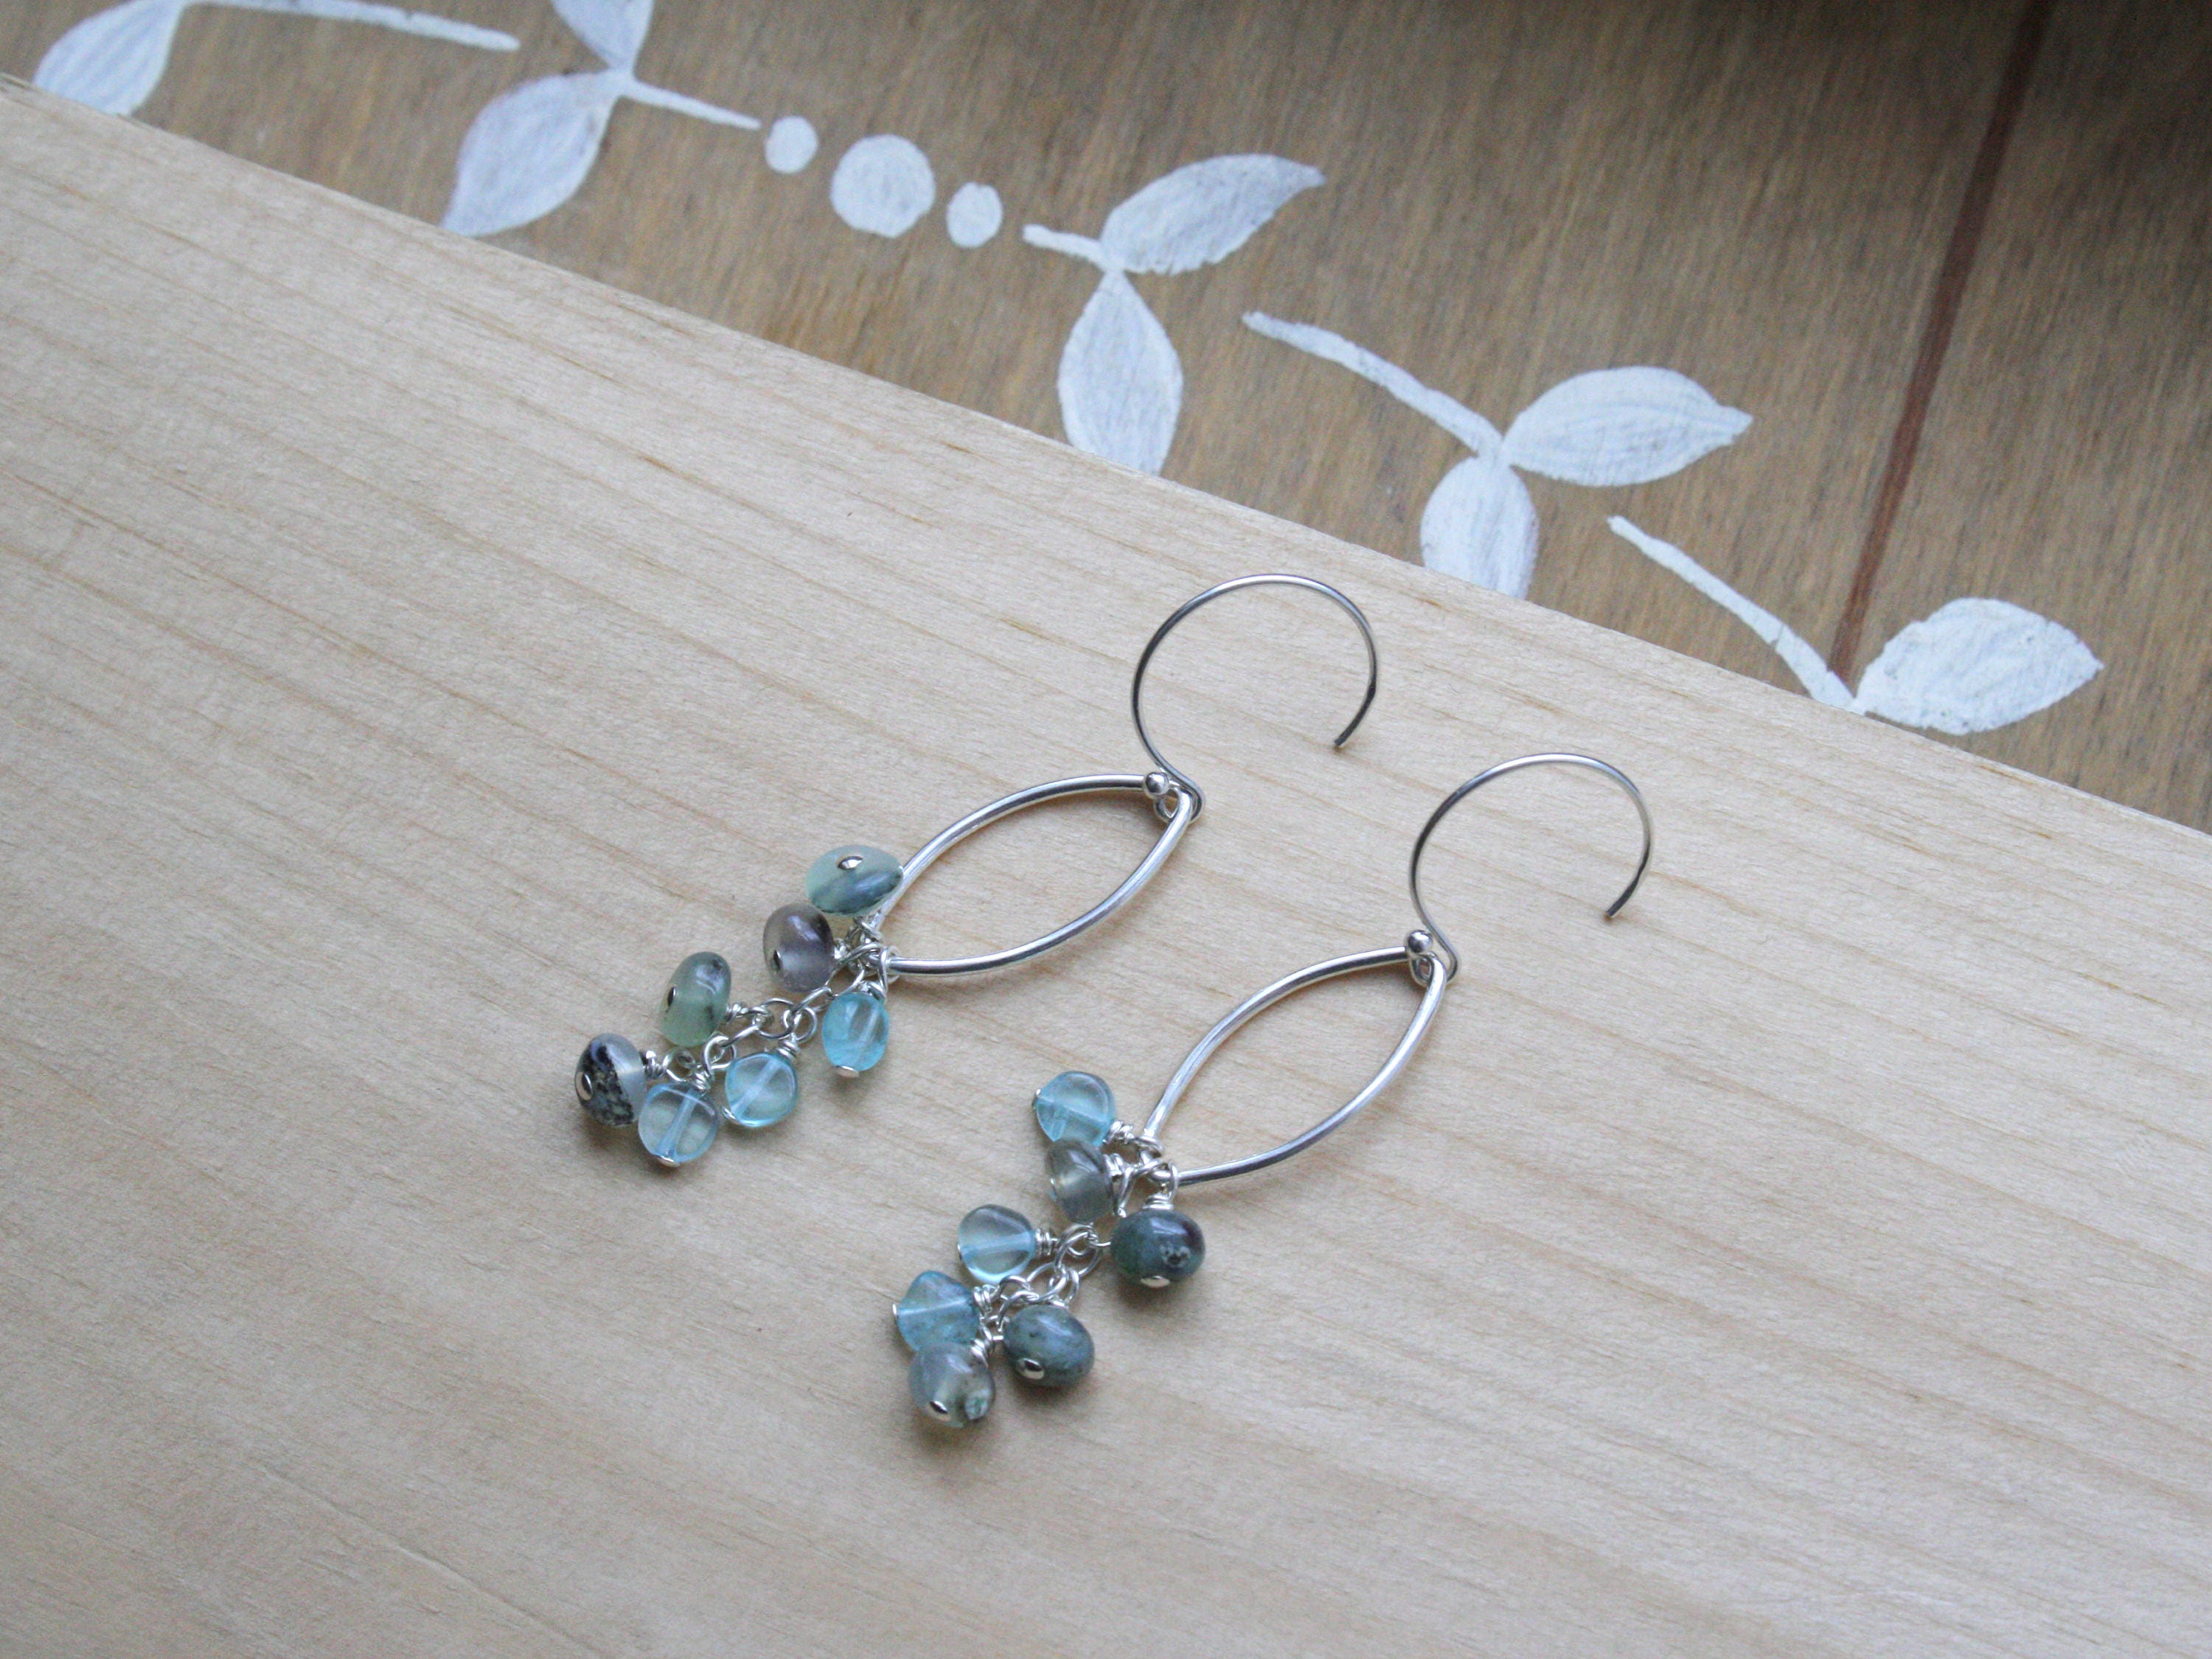 pinterest apatite earrings pin margery hirschey do turquoise